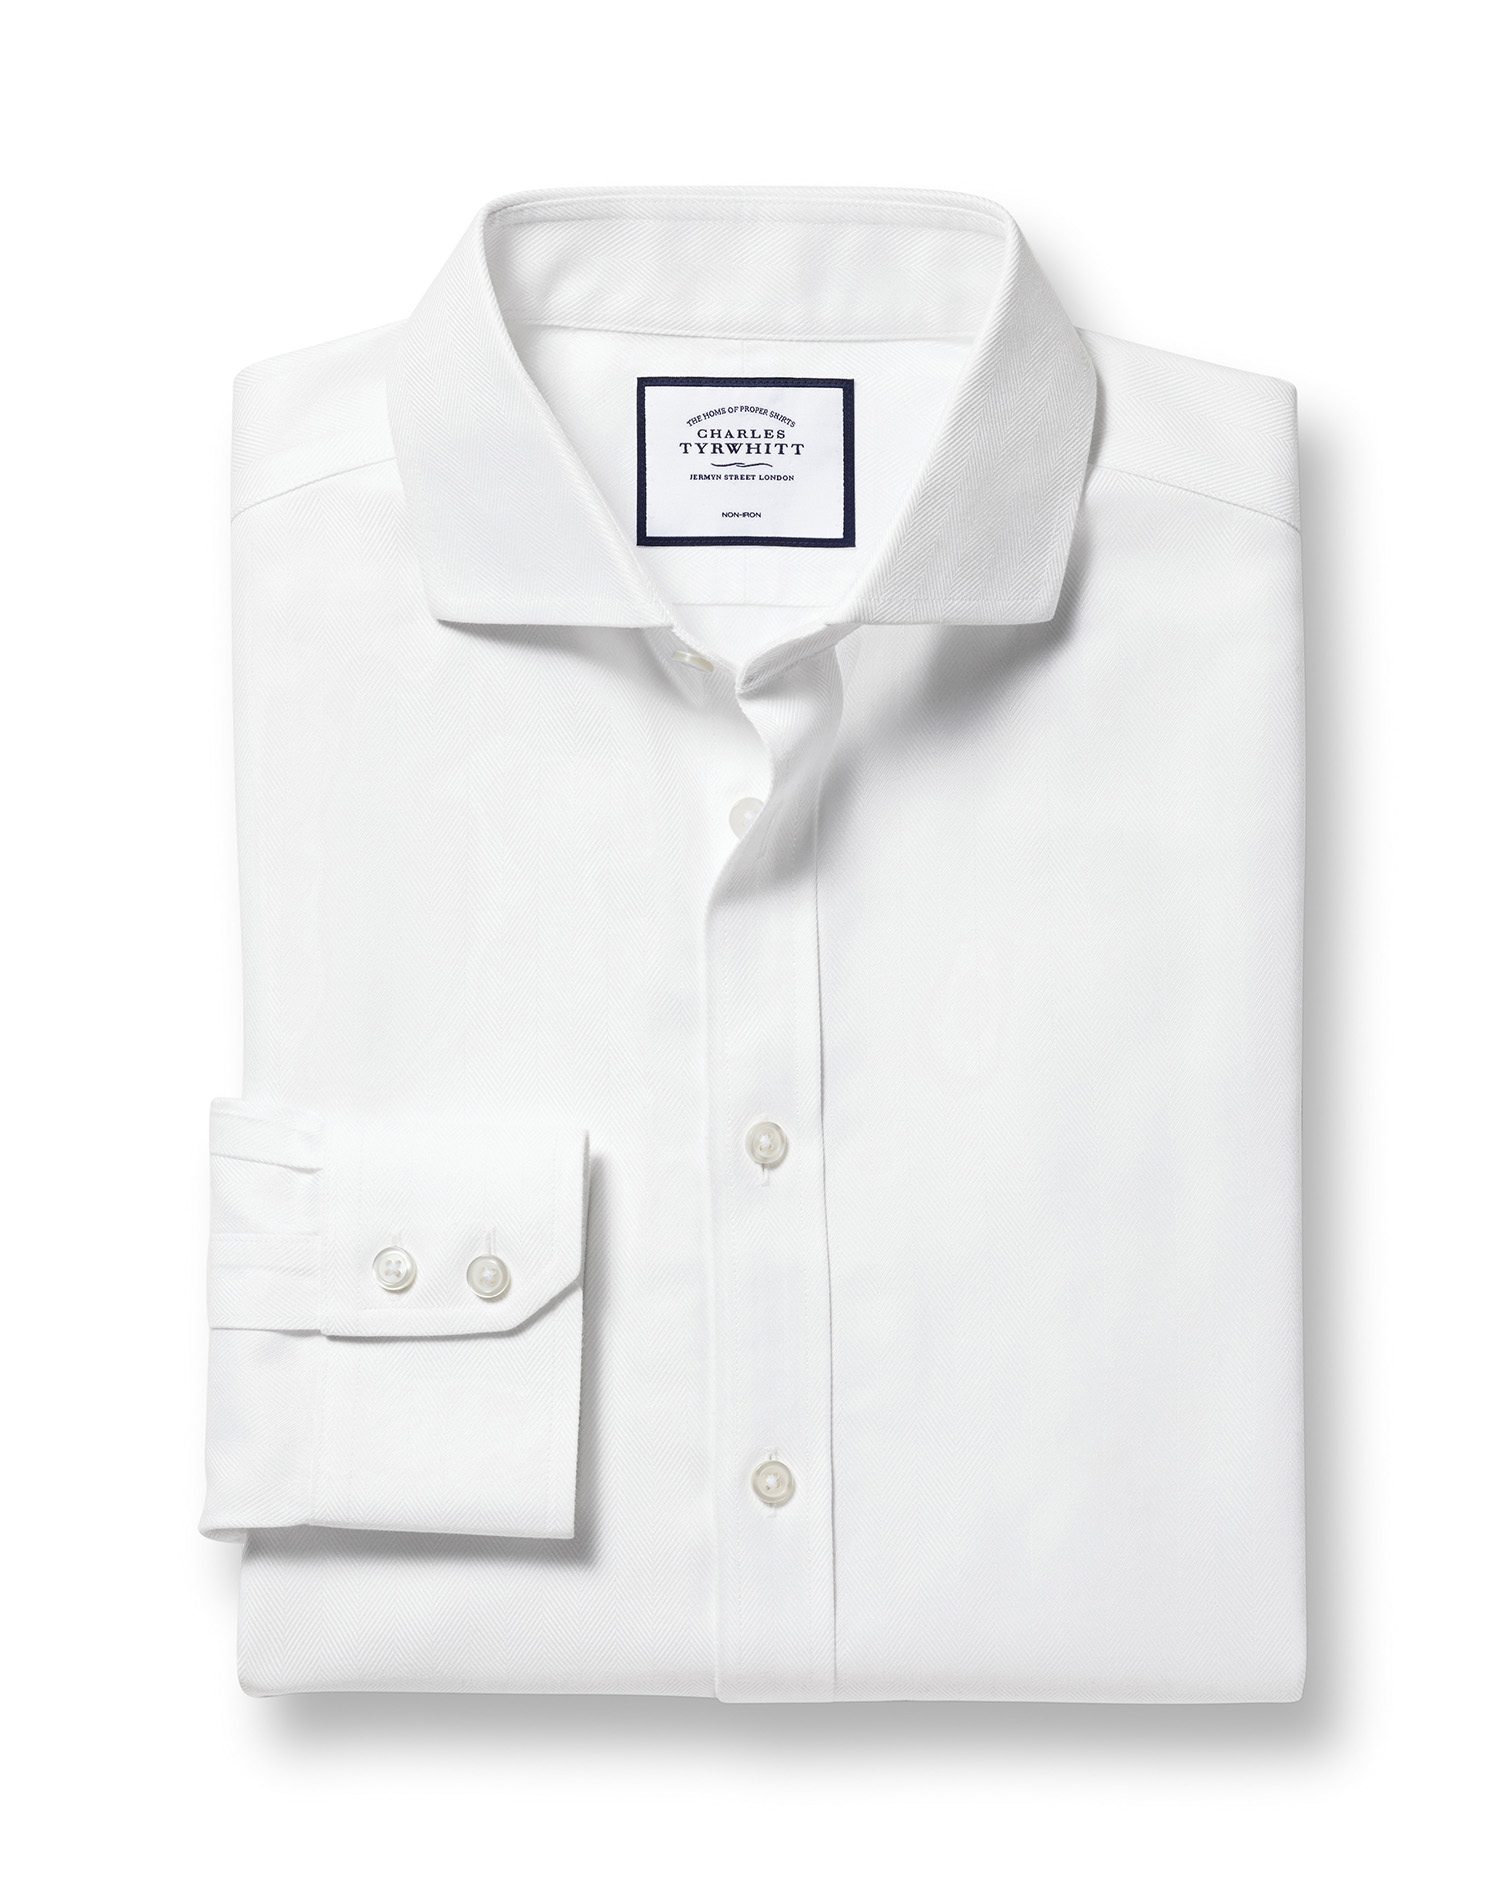 Extra Slim Fit Non-Iron White Herringbone Cotton Formal Shirt Single Cuff Size 16/36 by Charles Tyrw